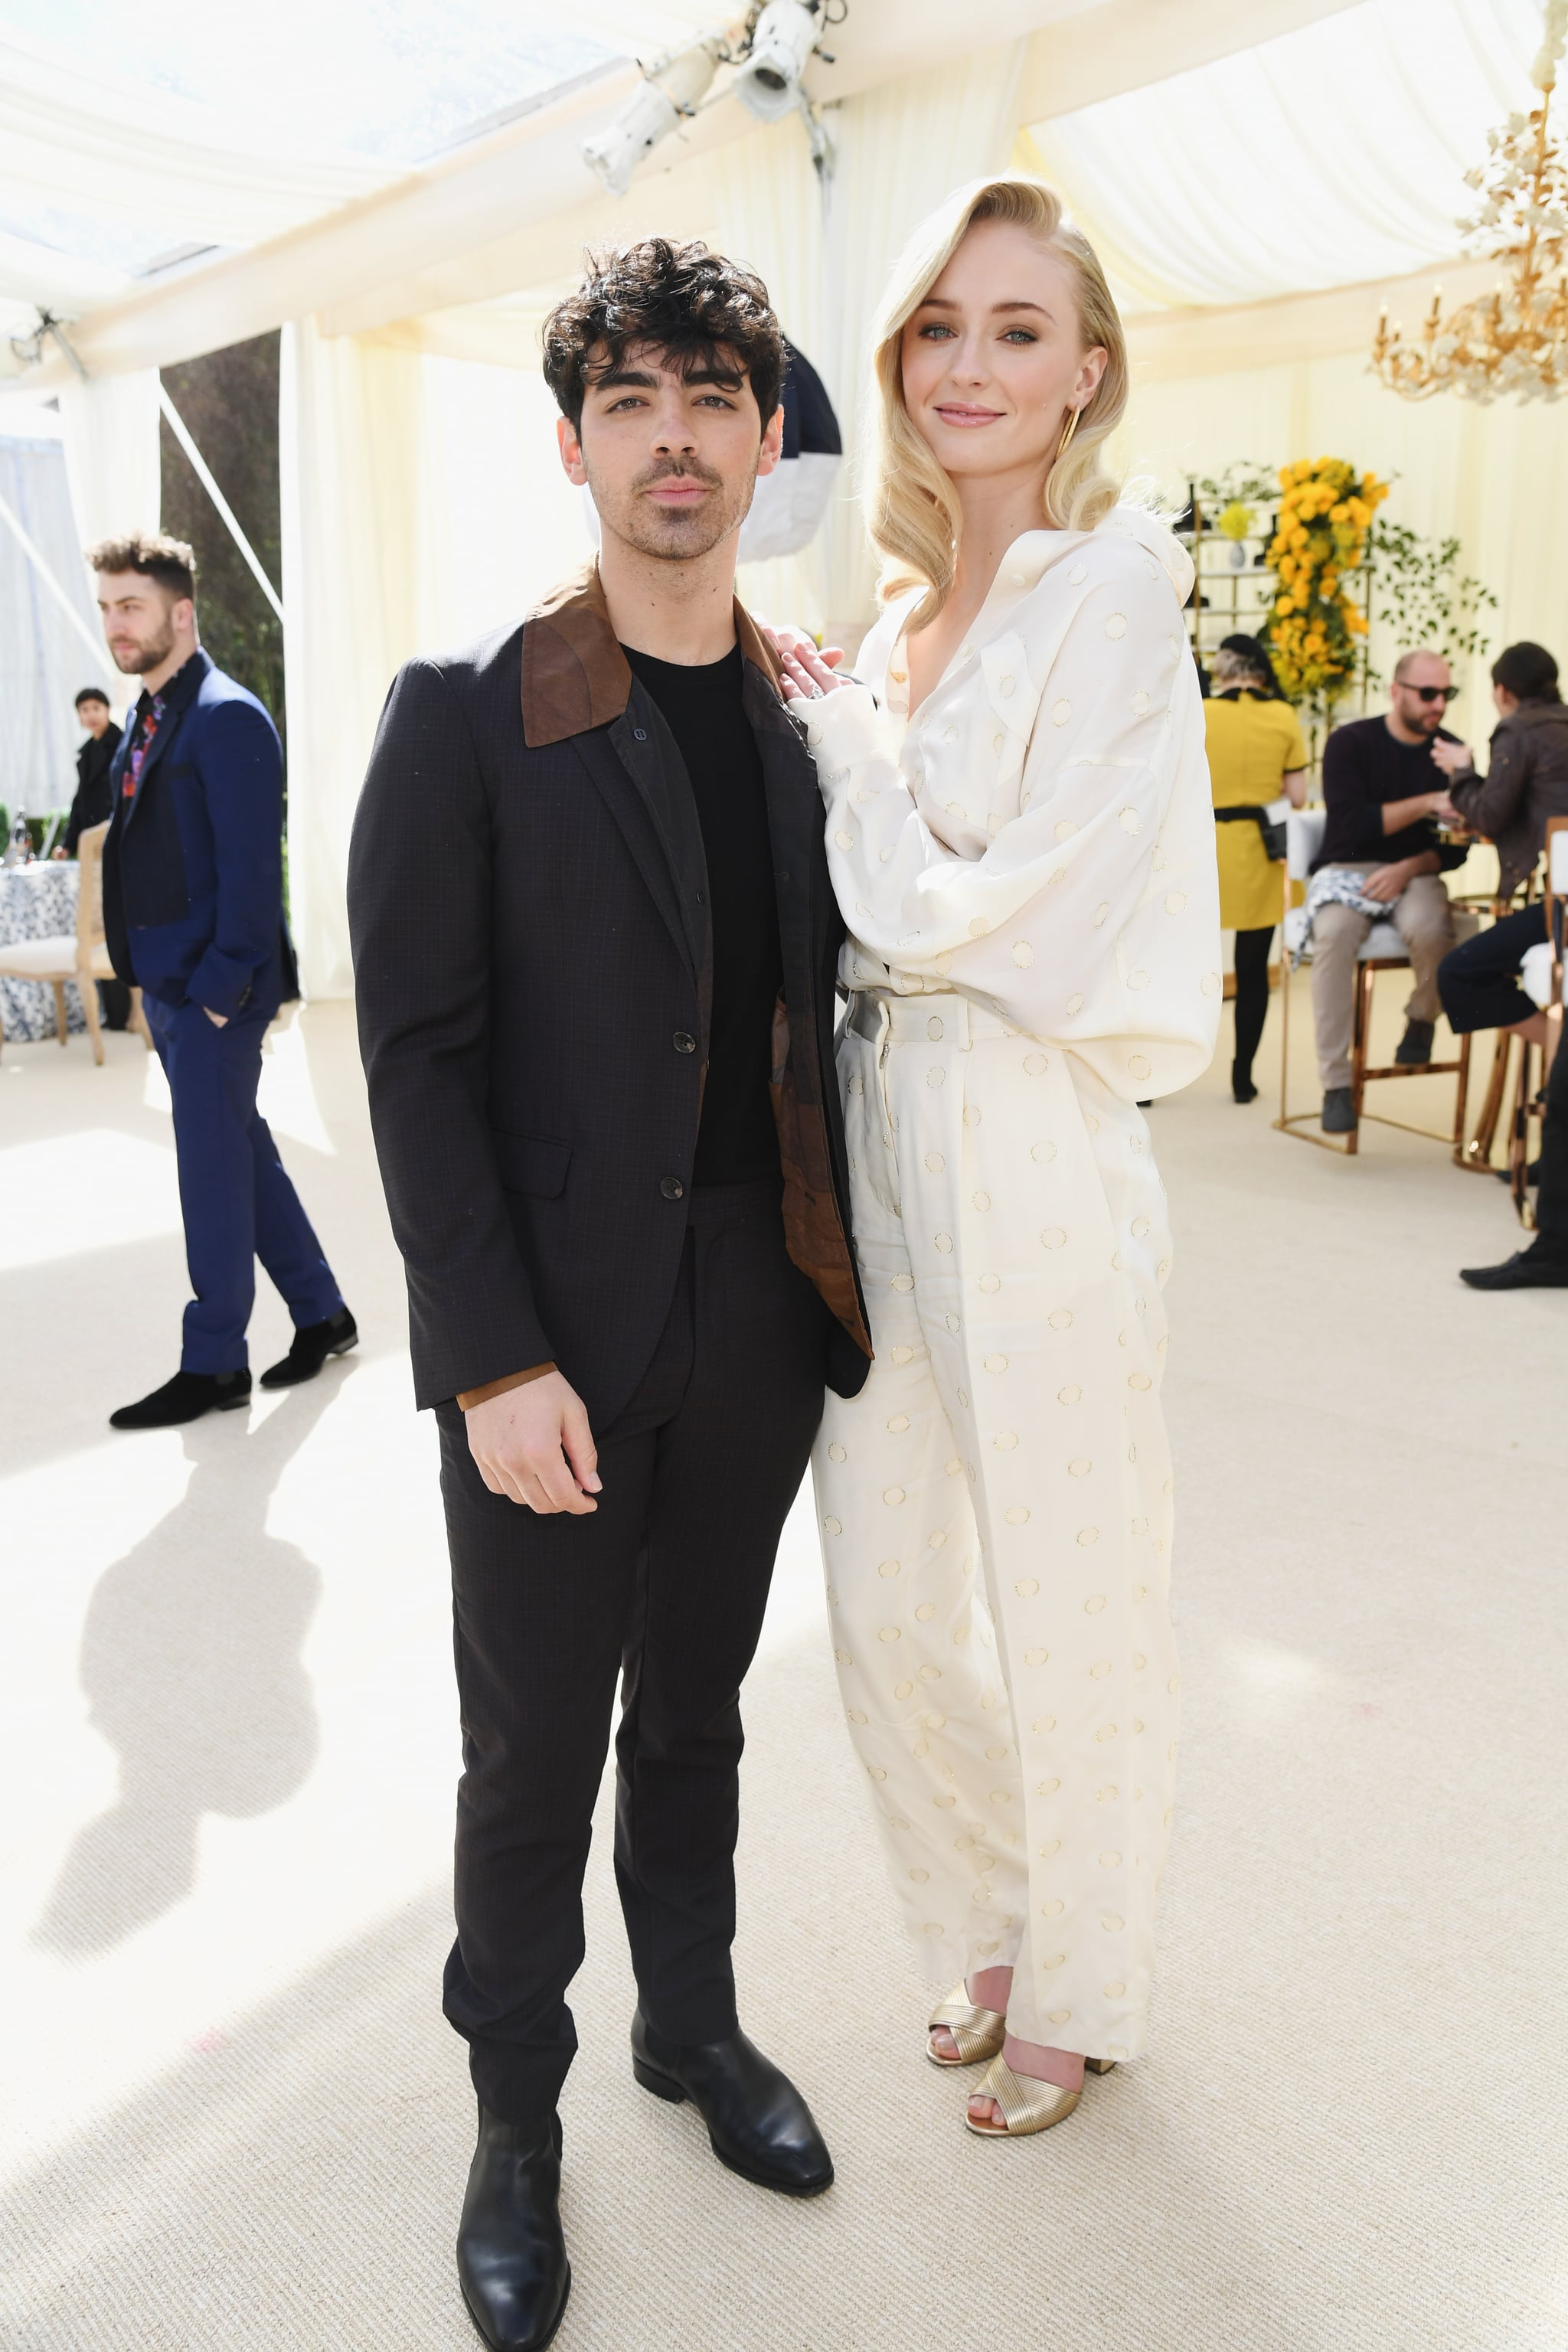 LOS ANGELES, CA - FEBRUARY 09:  Joe Jonas and Sophie Turner attend 2019 Roc Nation THE BRUNCH on February 9, 2019 in Los Angeles, California.  (Photo by Kevin Mazur/Getty Images for Roc Nation )